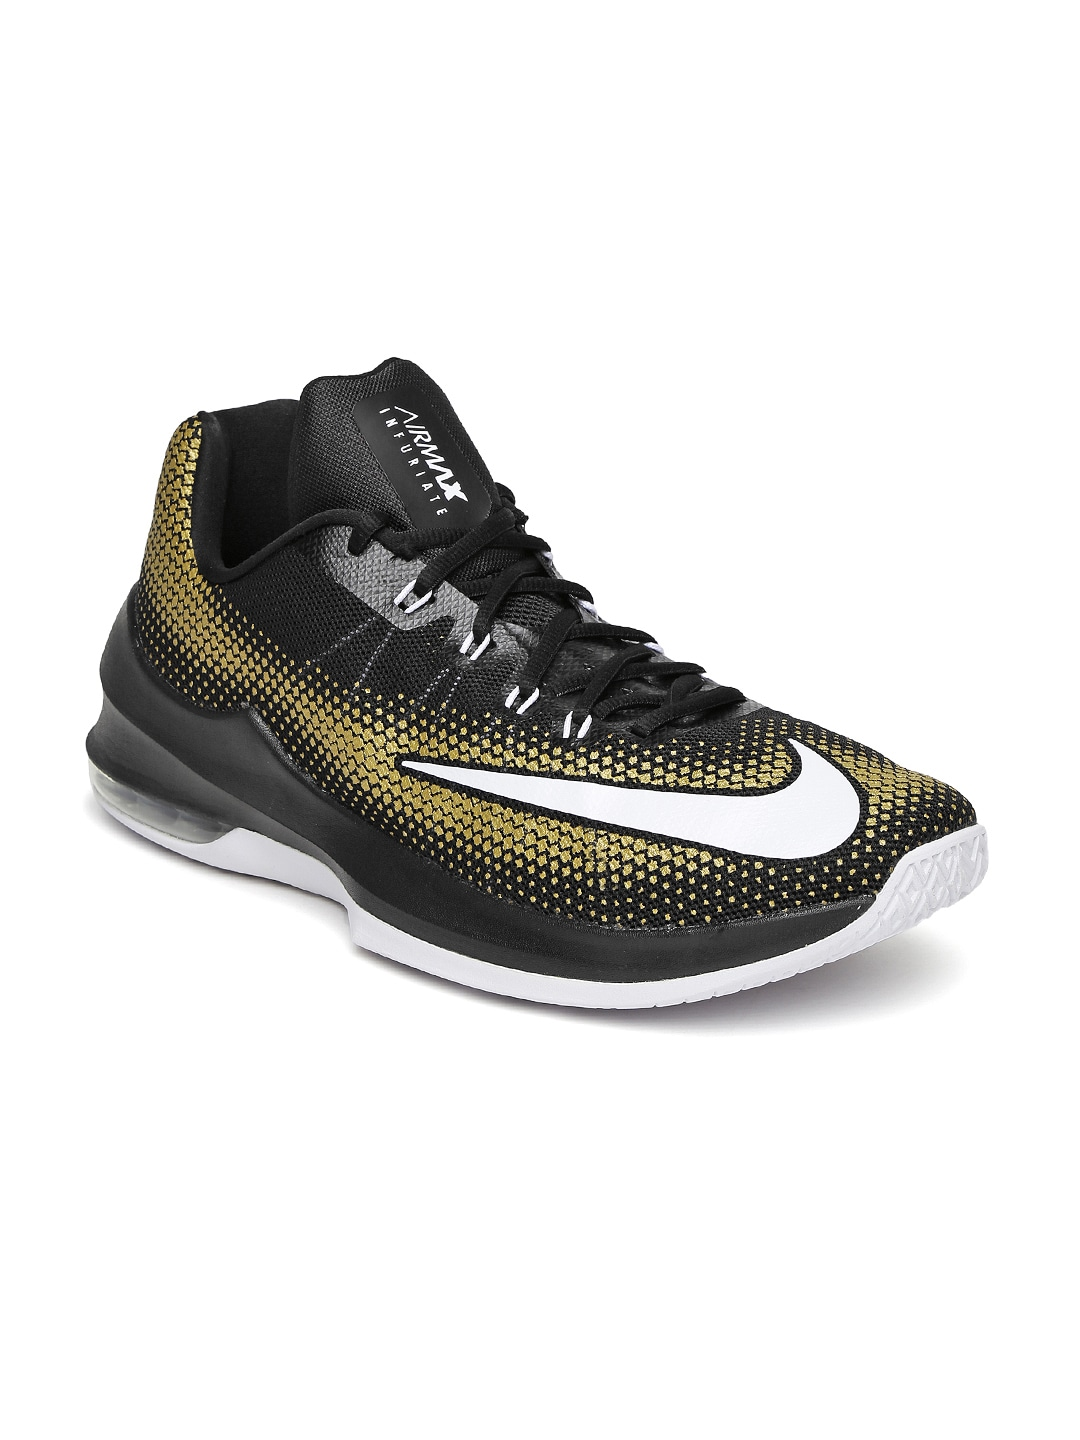 nike air max 2015 mens shoes india